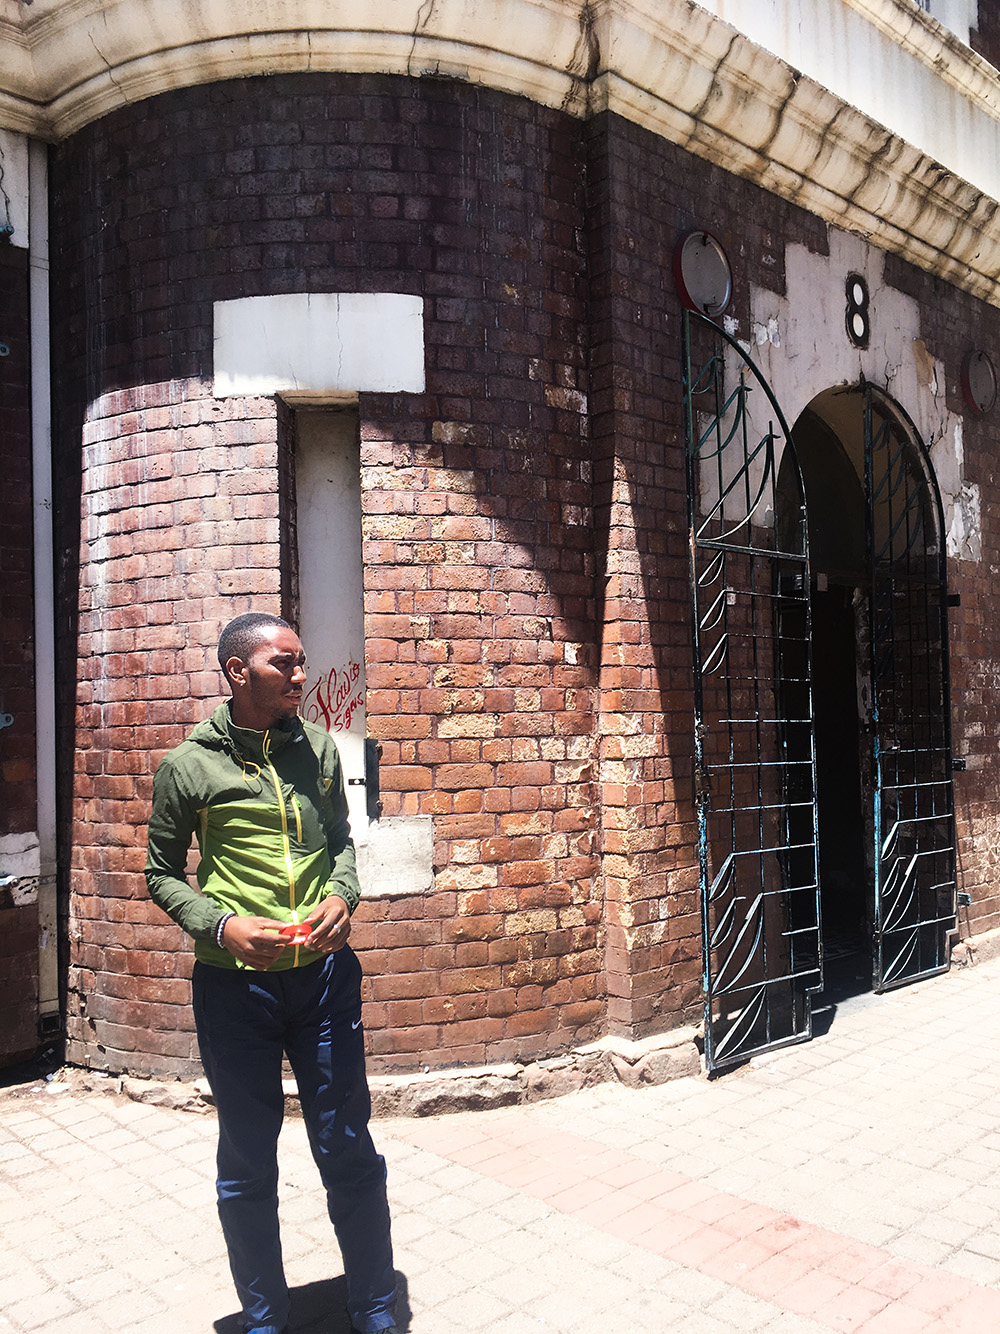 """Siyabonga Mahlangu, General Secretary of the Inner City Federation, outside Ingelosi House—or """"Number 8"""" to residents—in Hillbrow. Photo by Matthew Wilhelm-Solomon, 2017."""